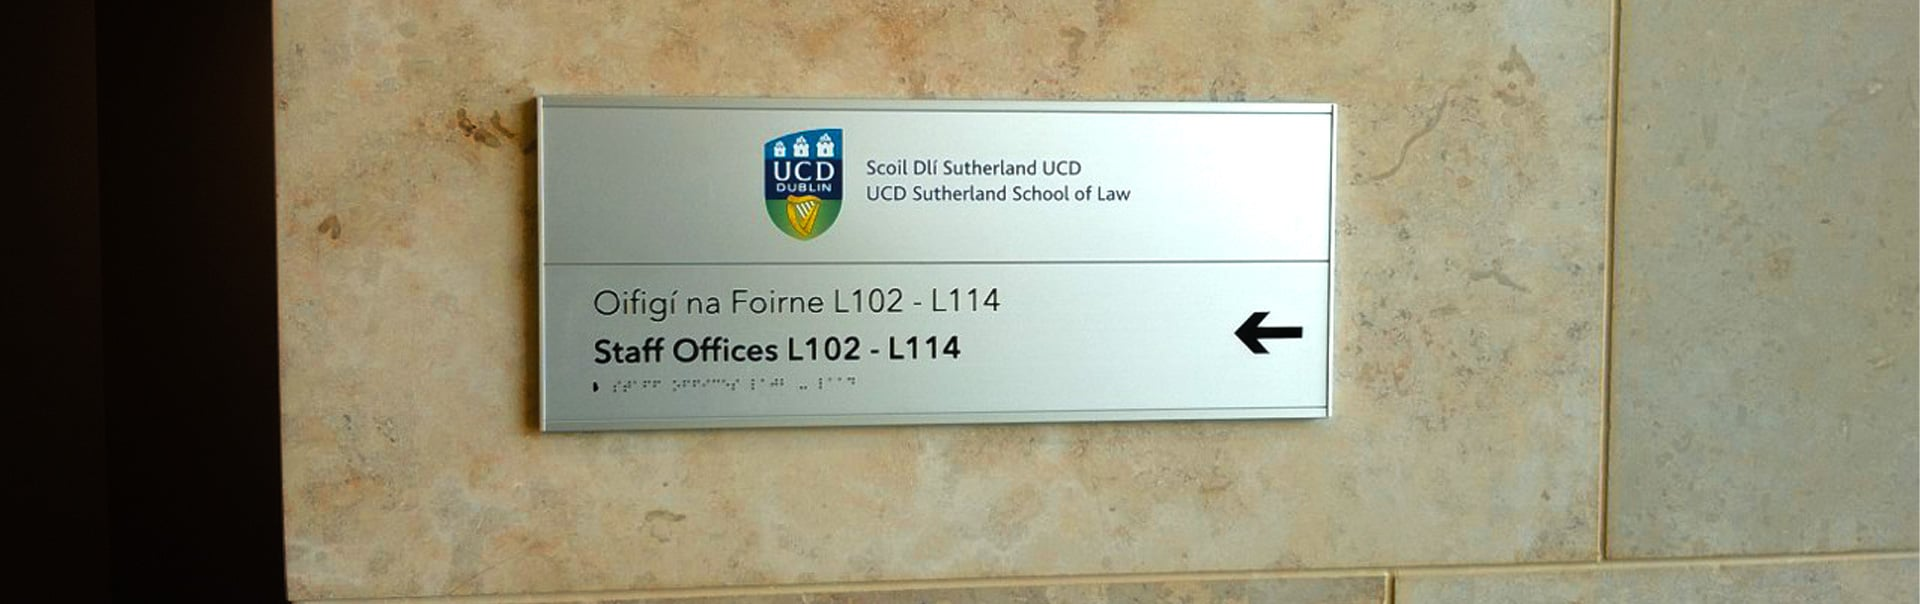 A braille wayfinding plaque points the way to the staff offices at UCD's School of Law